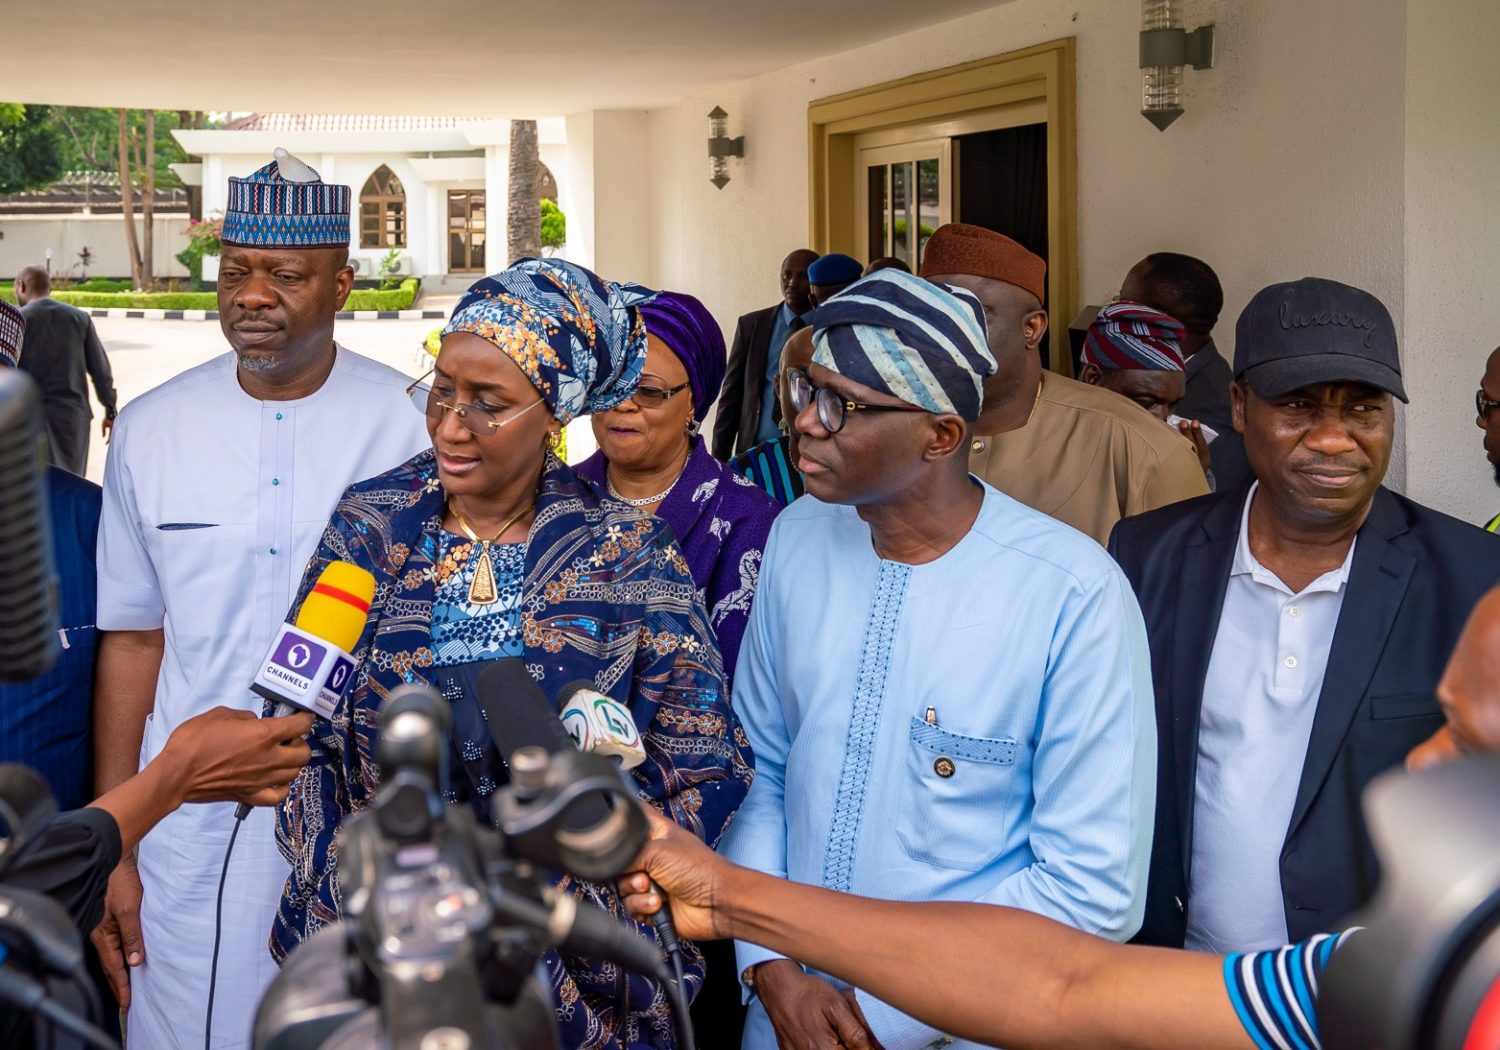 L-R: Chairman, House Committee on Emergency and Disaster, Hon. Tunji Olawuyi; Minister of Humanitarian Affairs, Disaster Management and Social Development, Hajiya Sadiya Umar Farouq; Lagos State Governor, Mr. Babajide Sanwo-Olu and his deputy, Dr. Obafemi Hamzat briefing journalists during a commiseration visit over the recent Abule-AdoSoba explosions at Lagos House, Marina, on Wednesday, March 18, 2020.